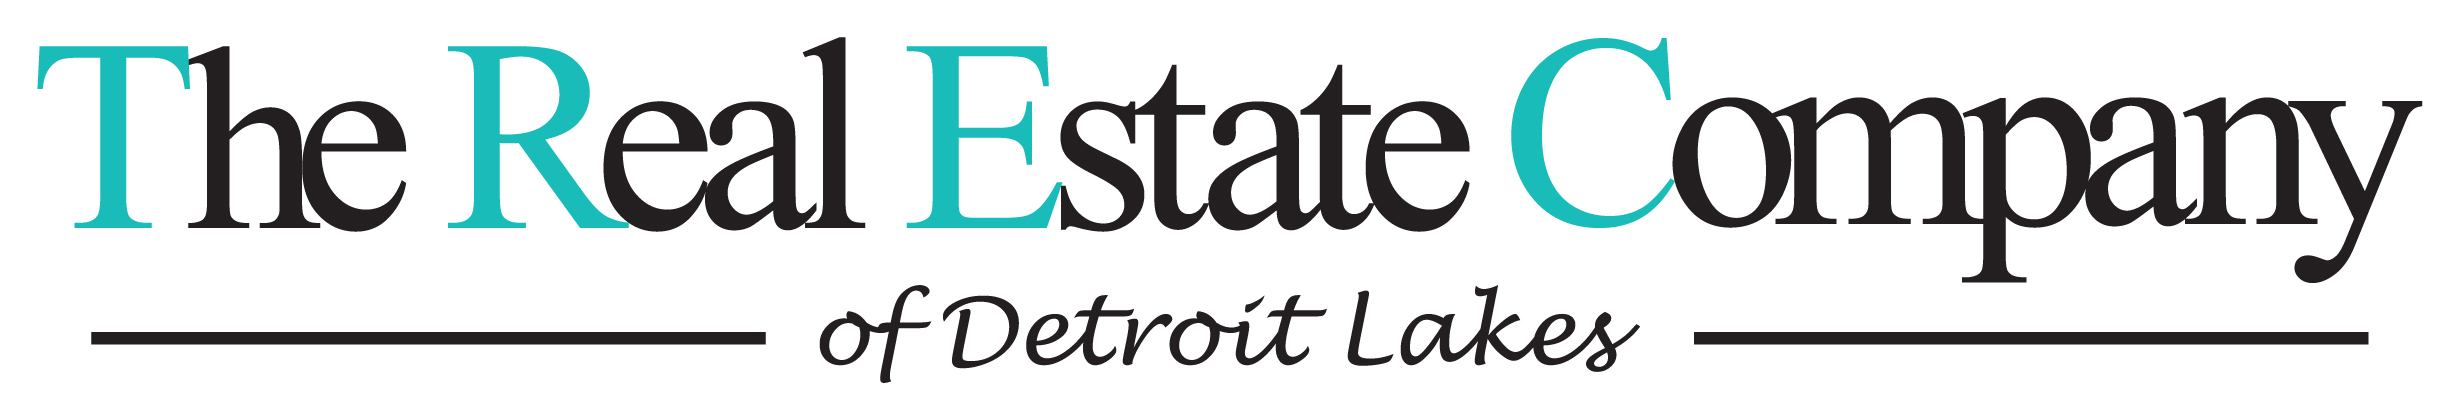 The Real Estate Company of Detroit Lakes